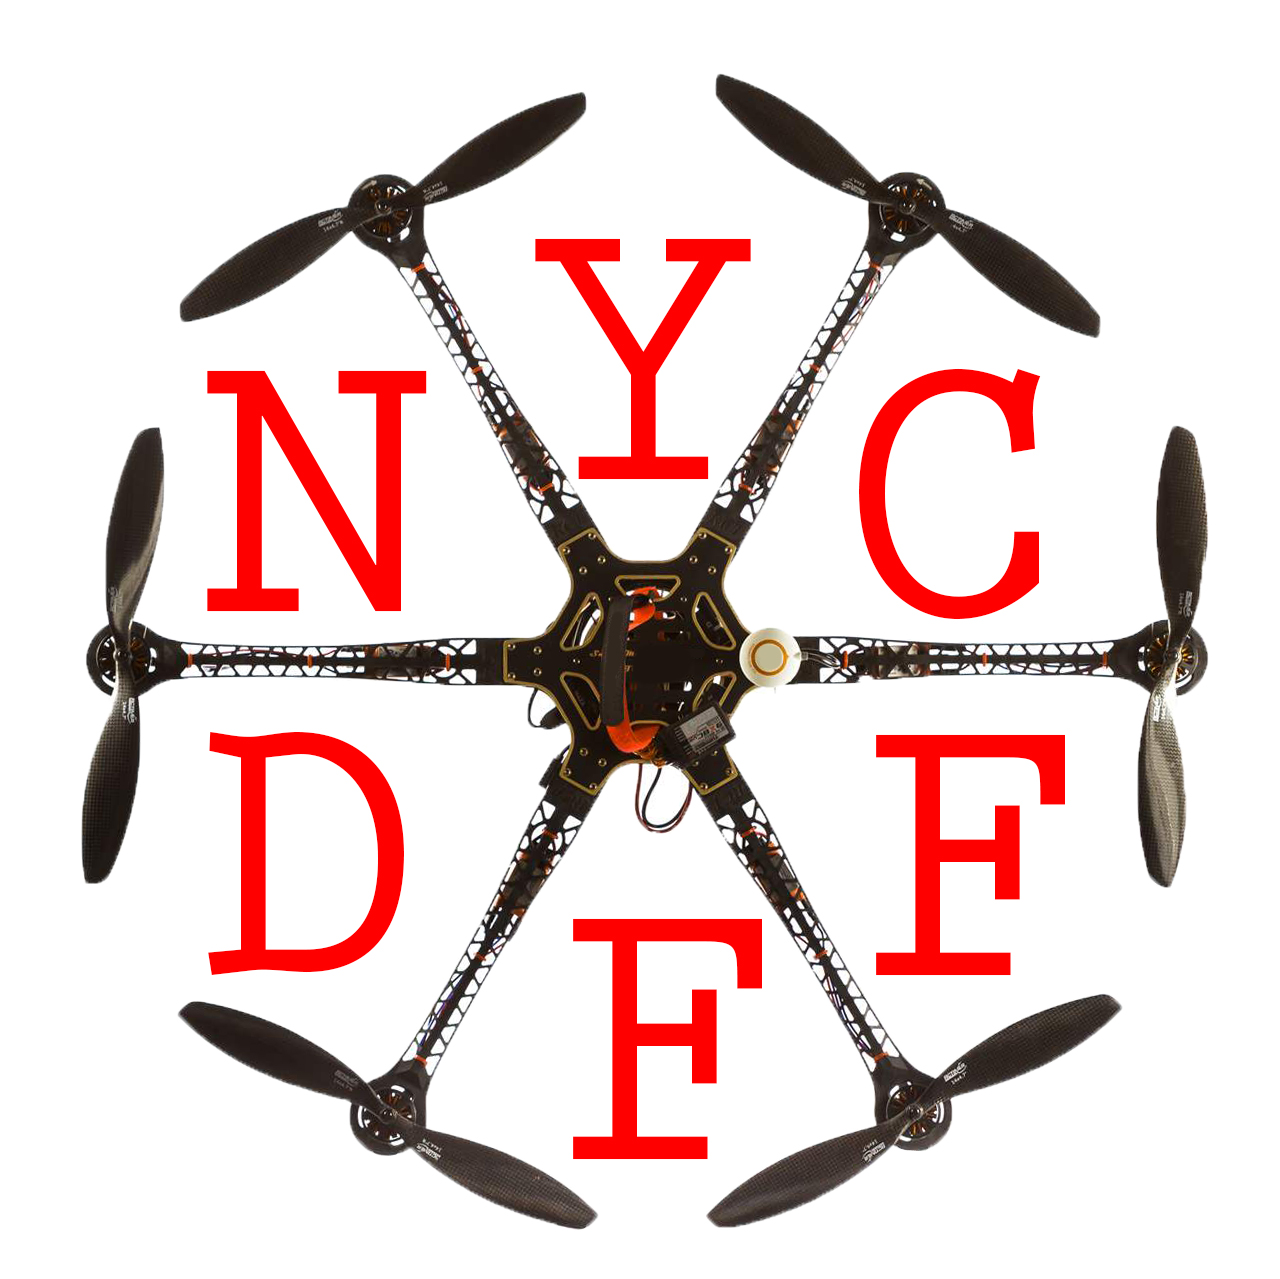 2nd ANNUAL NEW YORK CITY DRONE FILM FESTIVAL EXPANDS TO 3-DAY EVENT, RETURNS TO THE DGA THEATER 1 The2nd AnnualNew York City Drone Film Festivalwill be held from March 4ththrough March 6th2016. The three-day event will feature a dynamic slate of interactive panel discussions, guest speakers, screenings of nominated films and the annual awards ceremony. The festivalwill return to the Directors Guild of America Theaterfor the second year in a row.